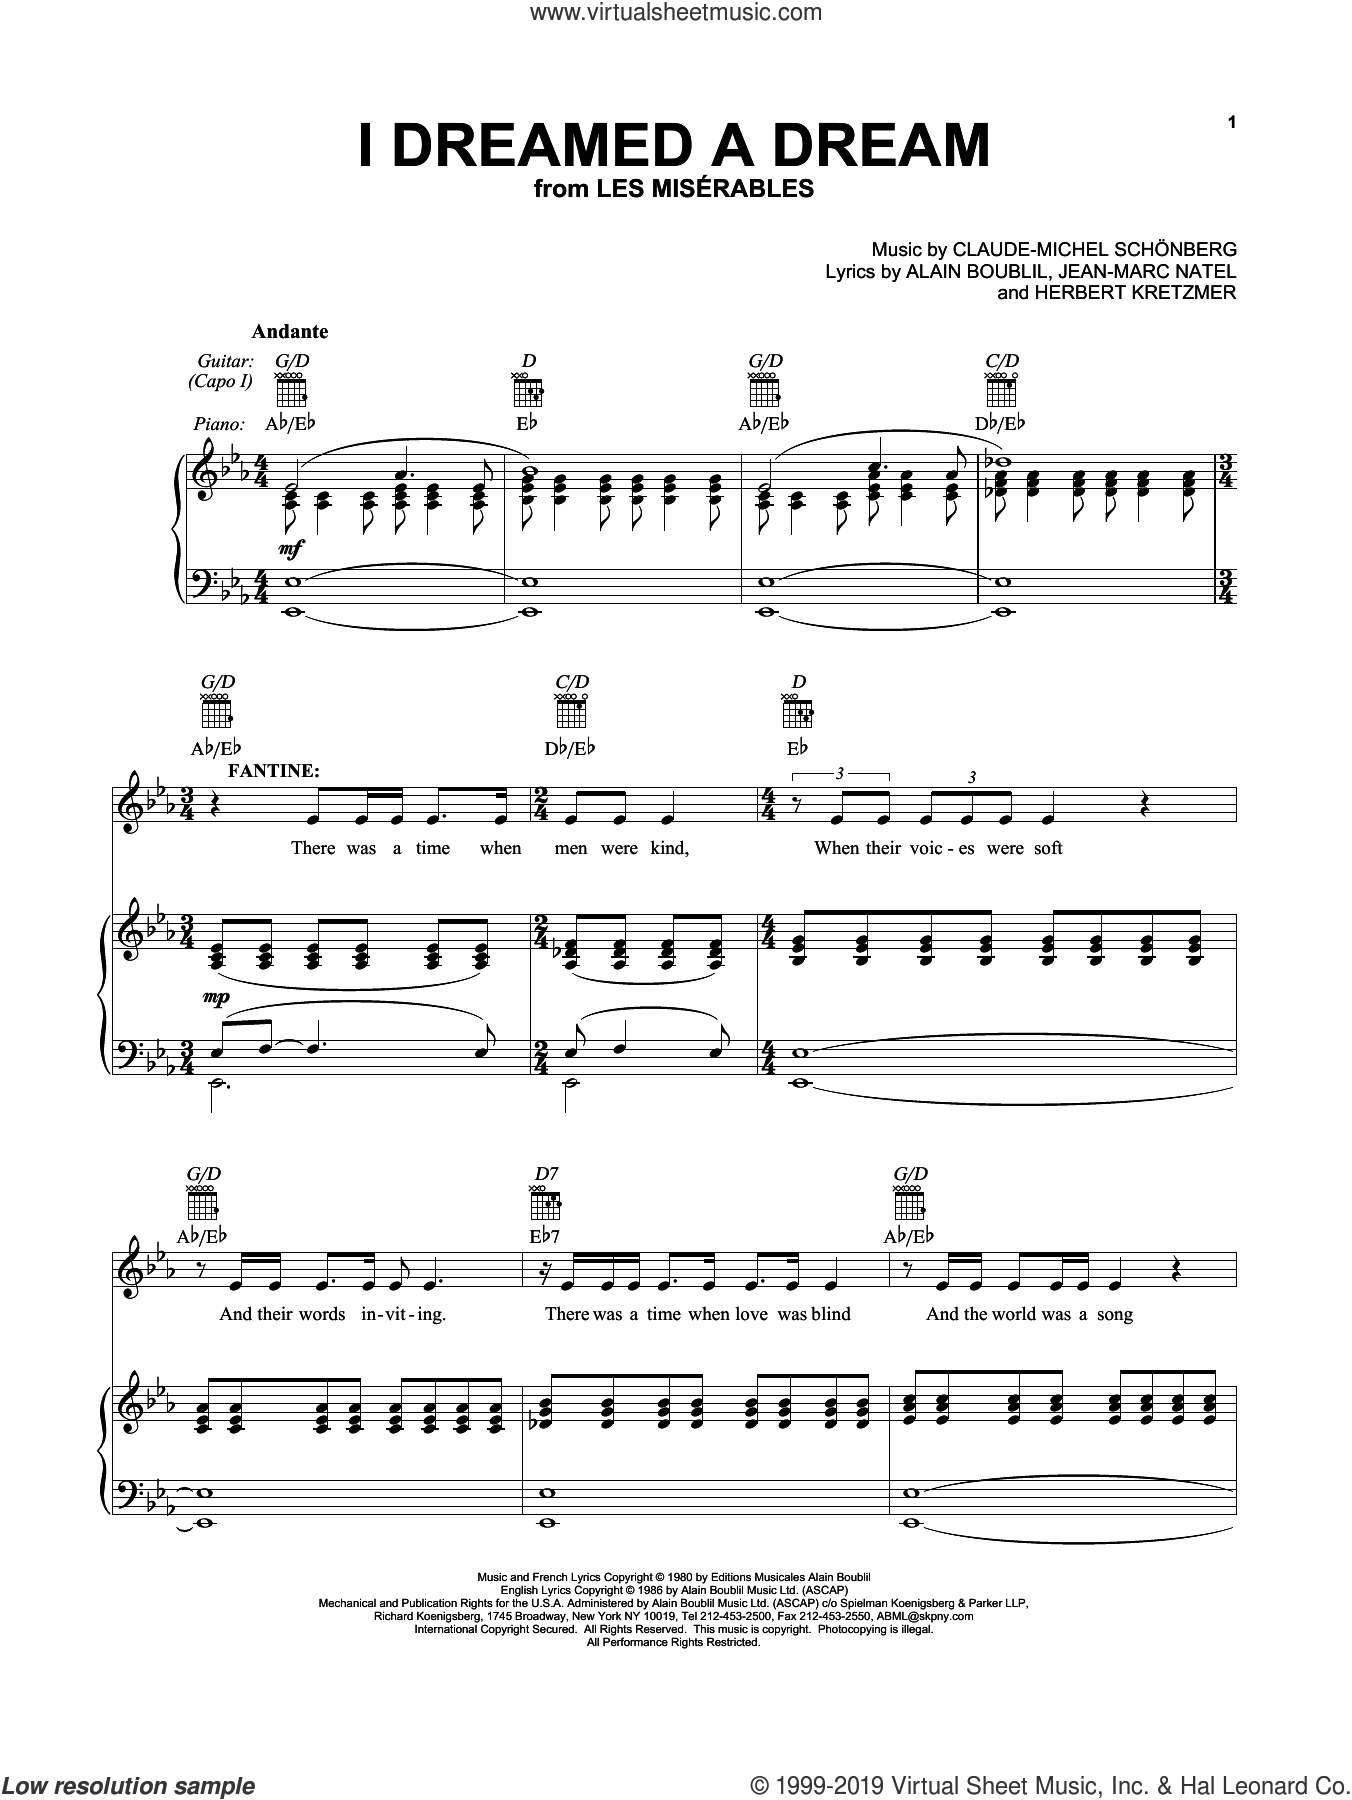 I Dreamed A Dream (from 'Les Miserables') sheet music for voice, piano or guitar by Alain Boublil, Susan Boyle, Claude-Michel Schonberg, Herbert Kretzmer and Jean-Marc Natel, intermediate skill level